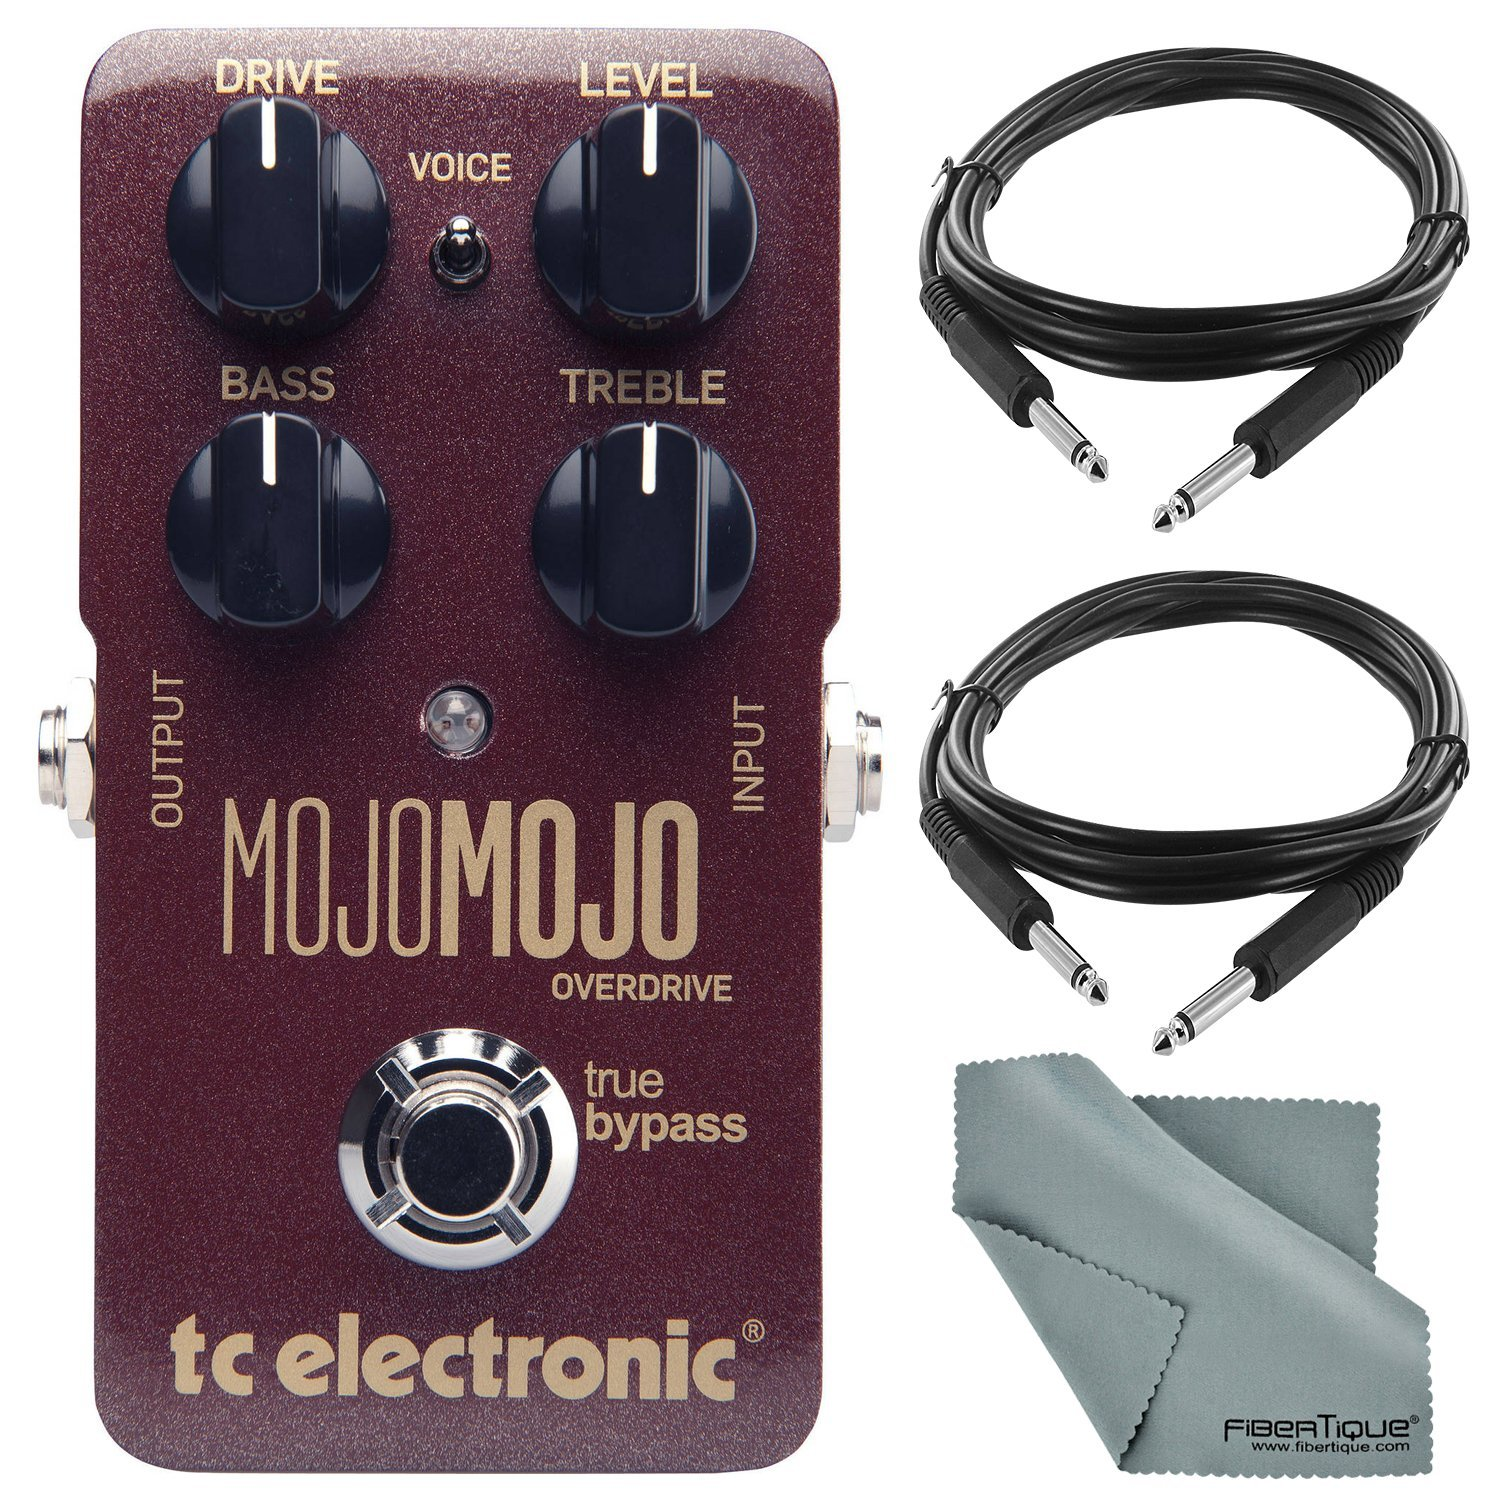 TC Electronic MojoMojo Overdrive Tube Amp Overdrive Effect Pedal and Accessory Bundle w/ Xpix Cables + Fibertique Cleaning Cloth